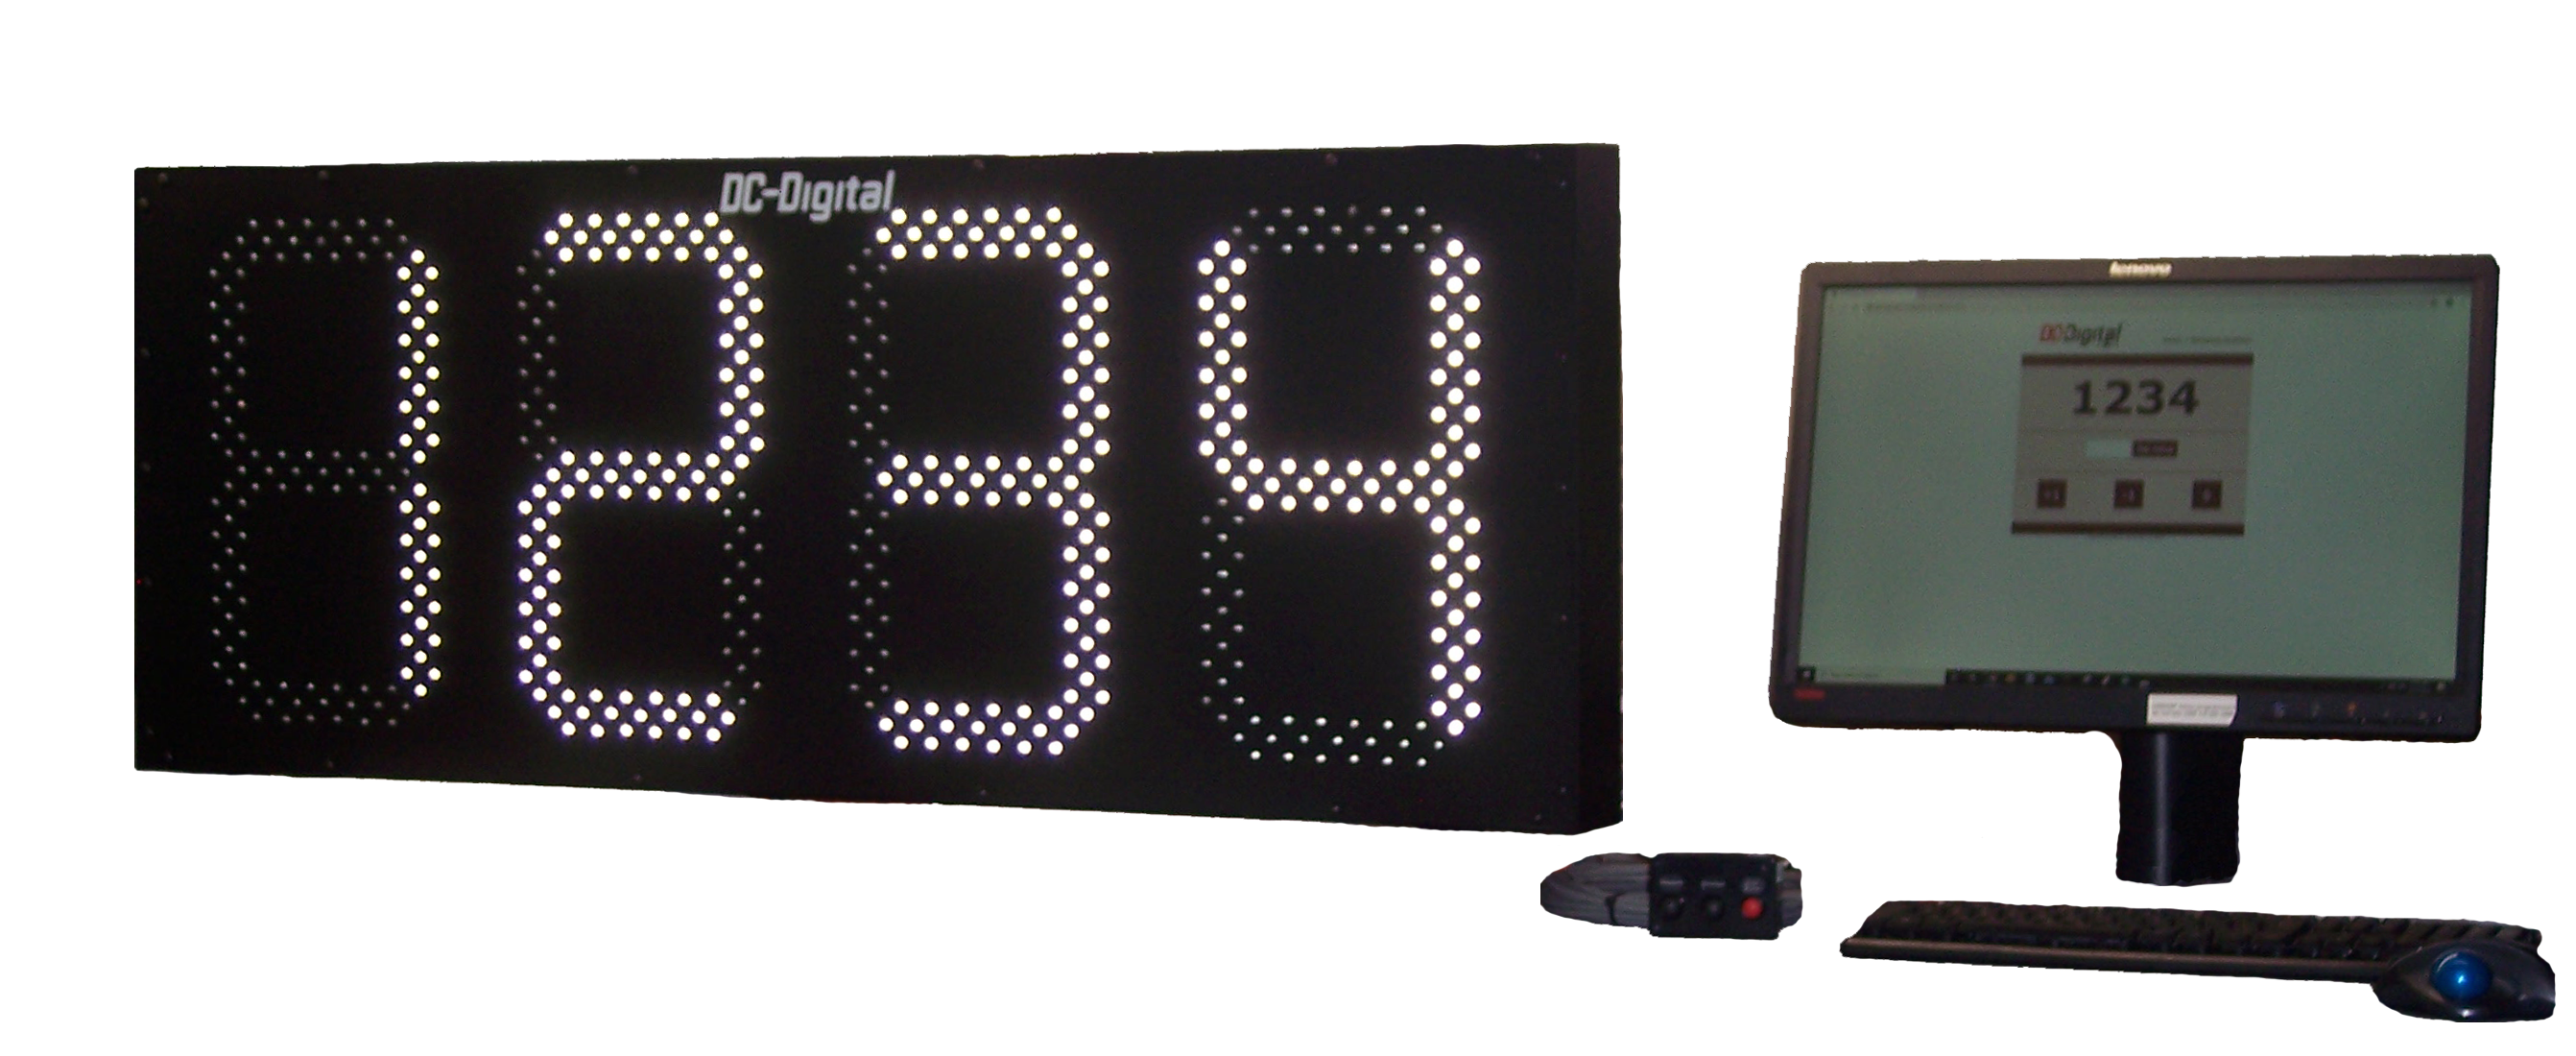 15 Inch Network controlled white LED count up Days display